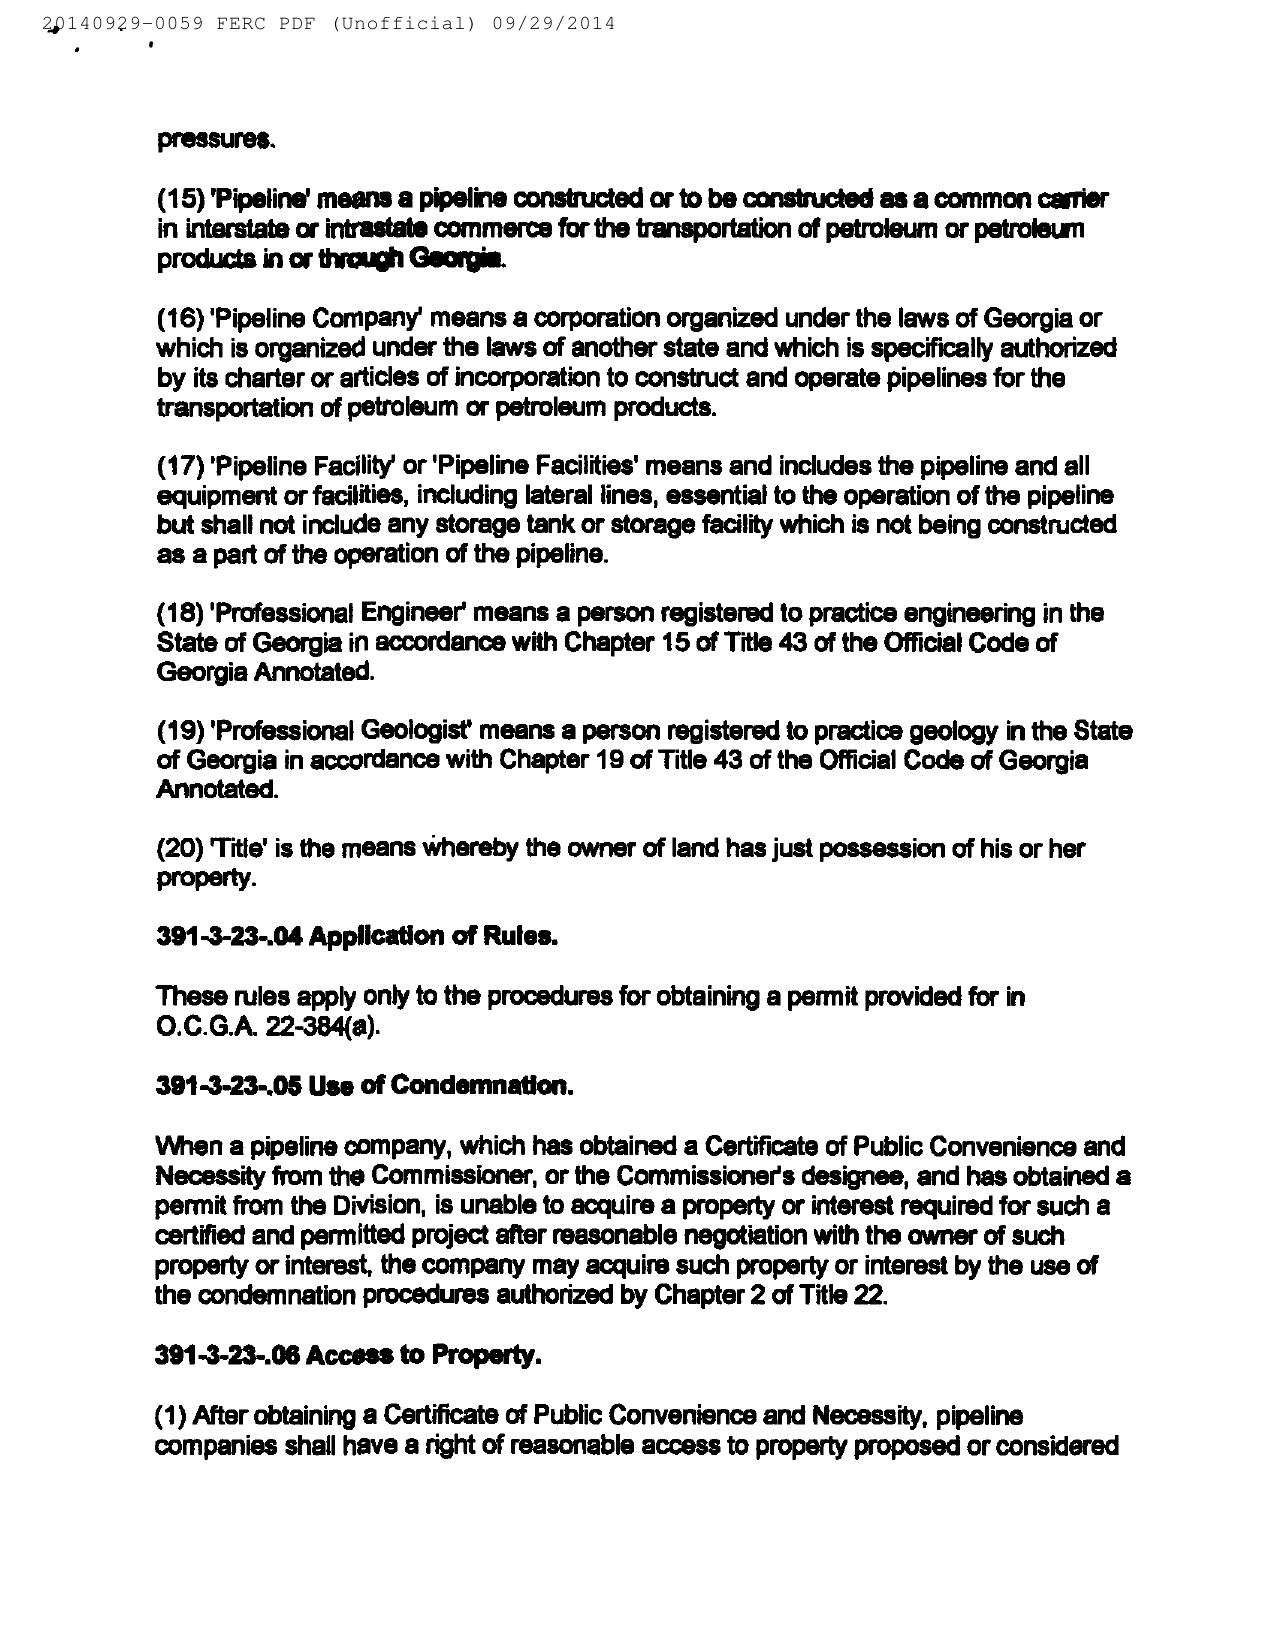 1280x1650 H: GA-EPD Petroleum Pipeline Eminent Domain Permit Procedures (3 of 6), in Resurvey all the properties, by Bill Kendall, for SpectraBusters.org, 29 September 2014